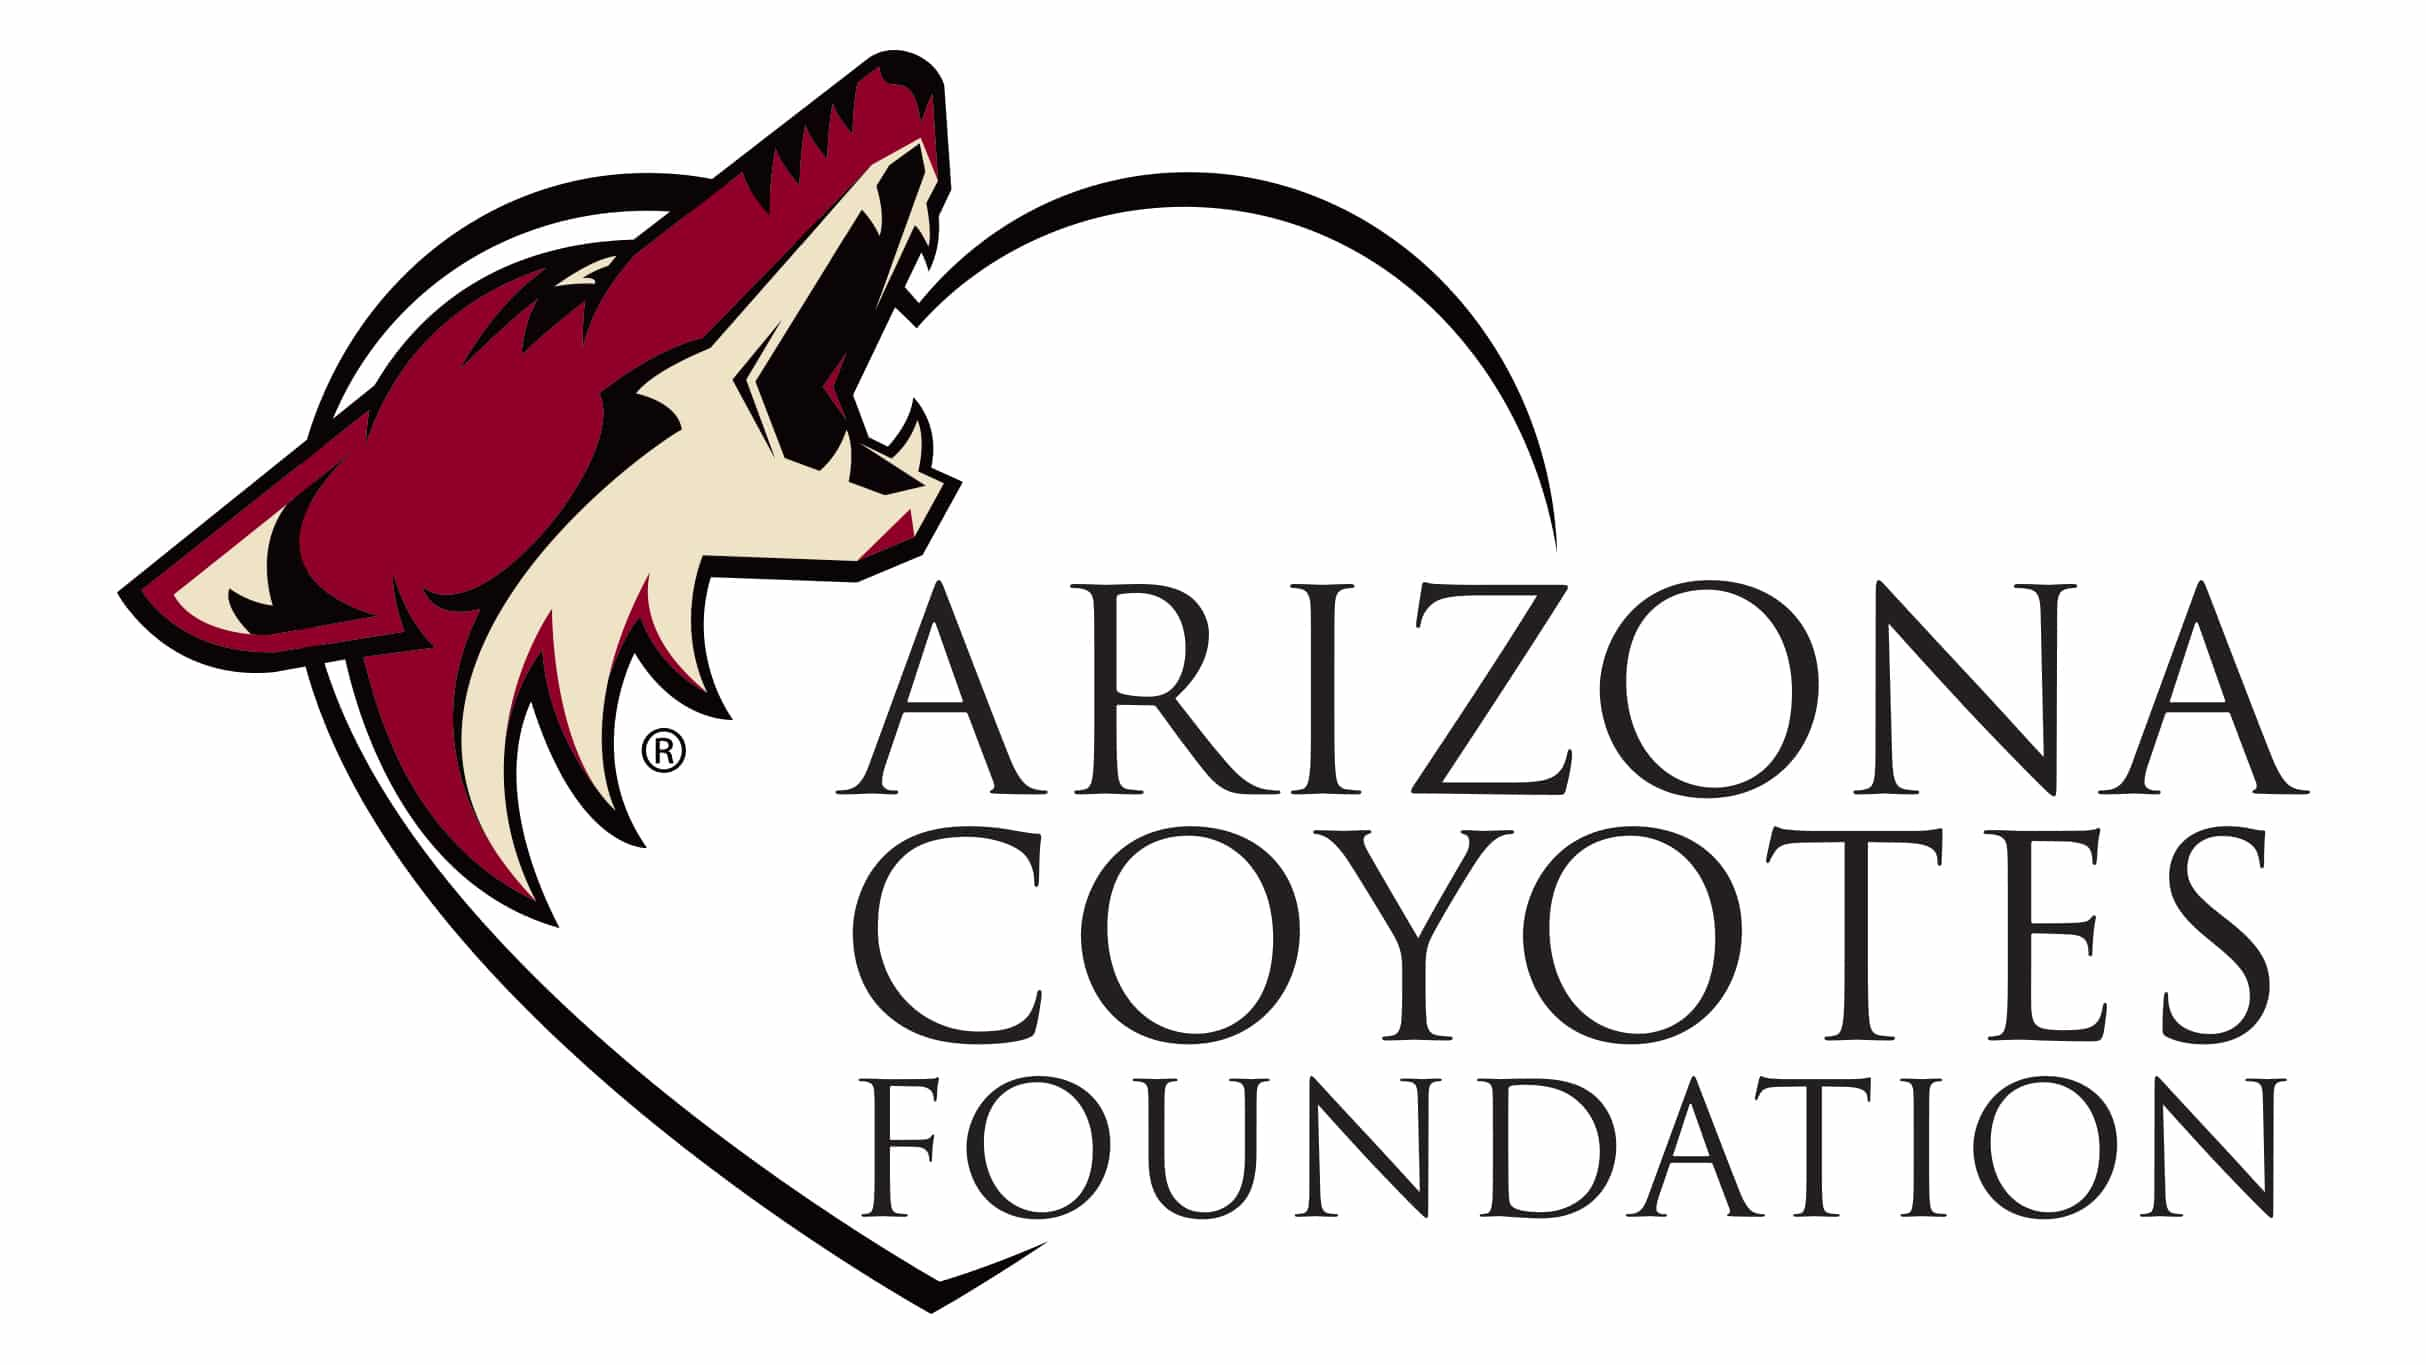 Arizona Coyotes Day